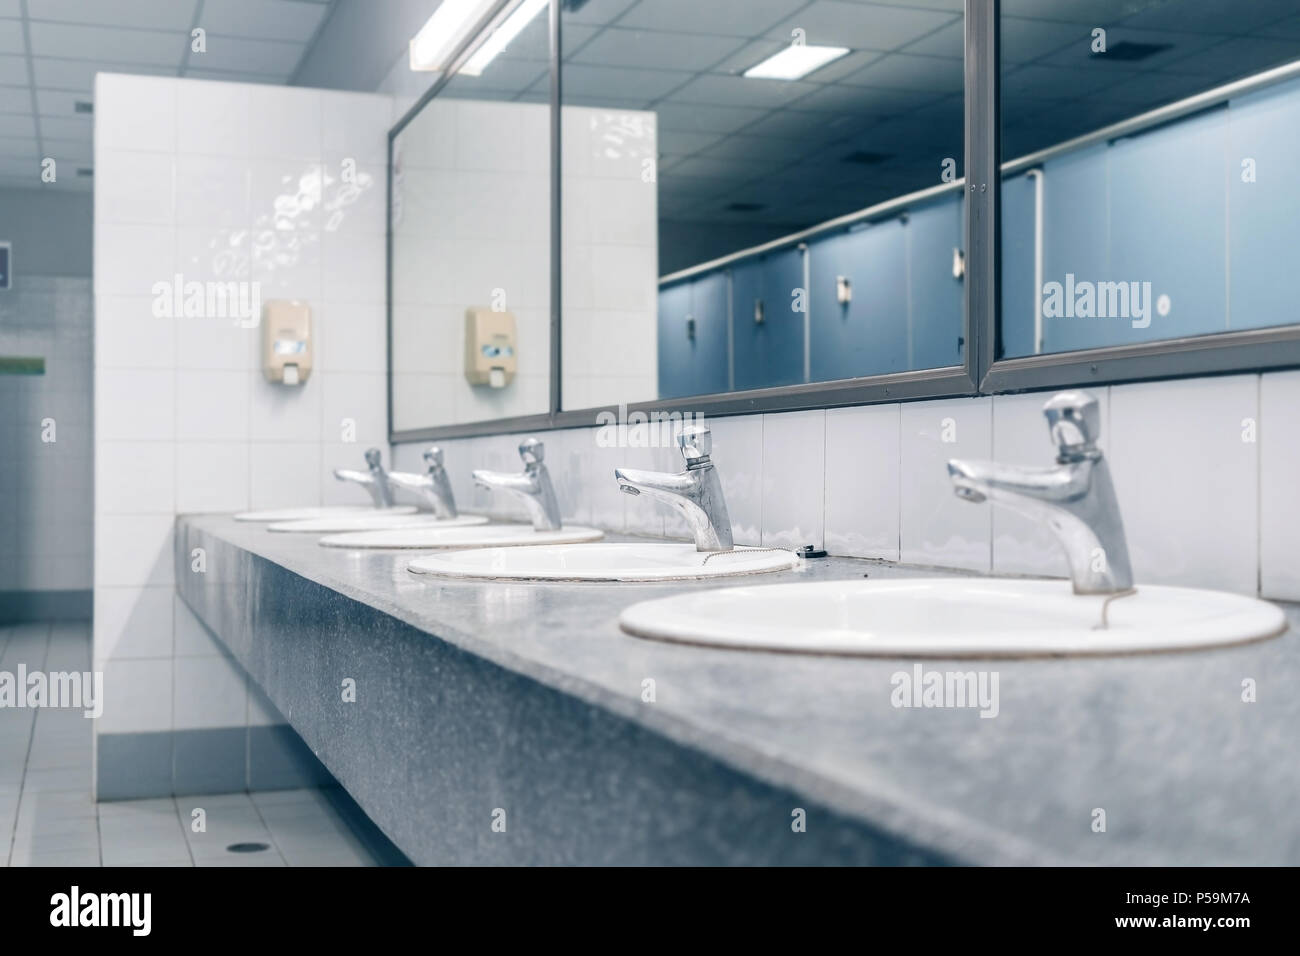 Public toilet and Bathroom interior with white wash basin and sink ...